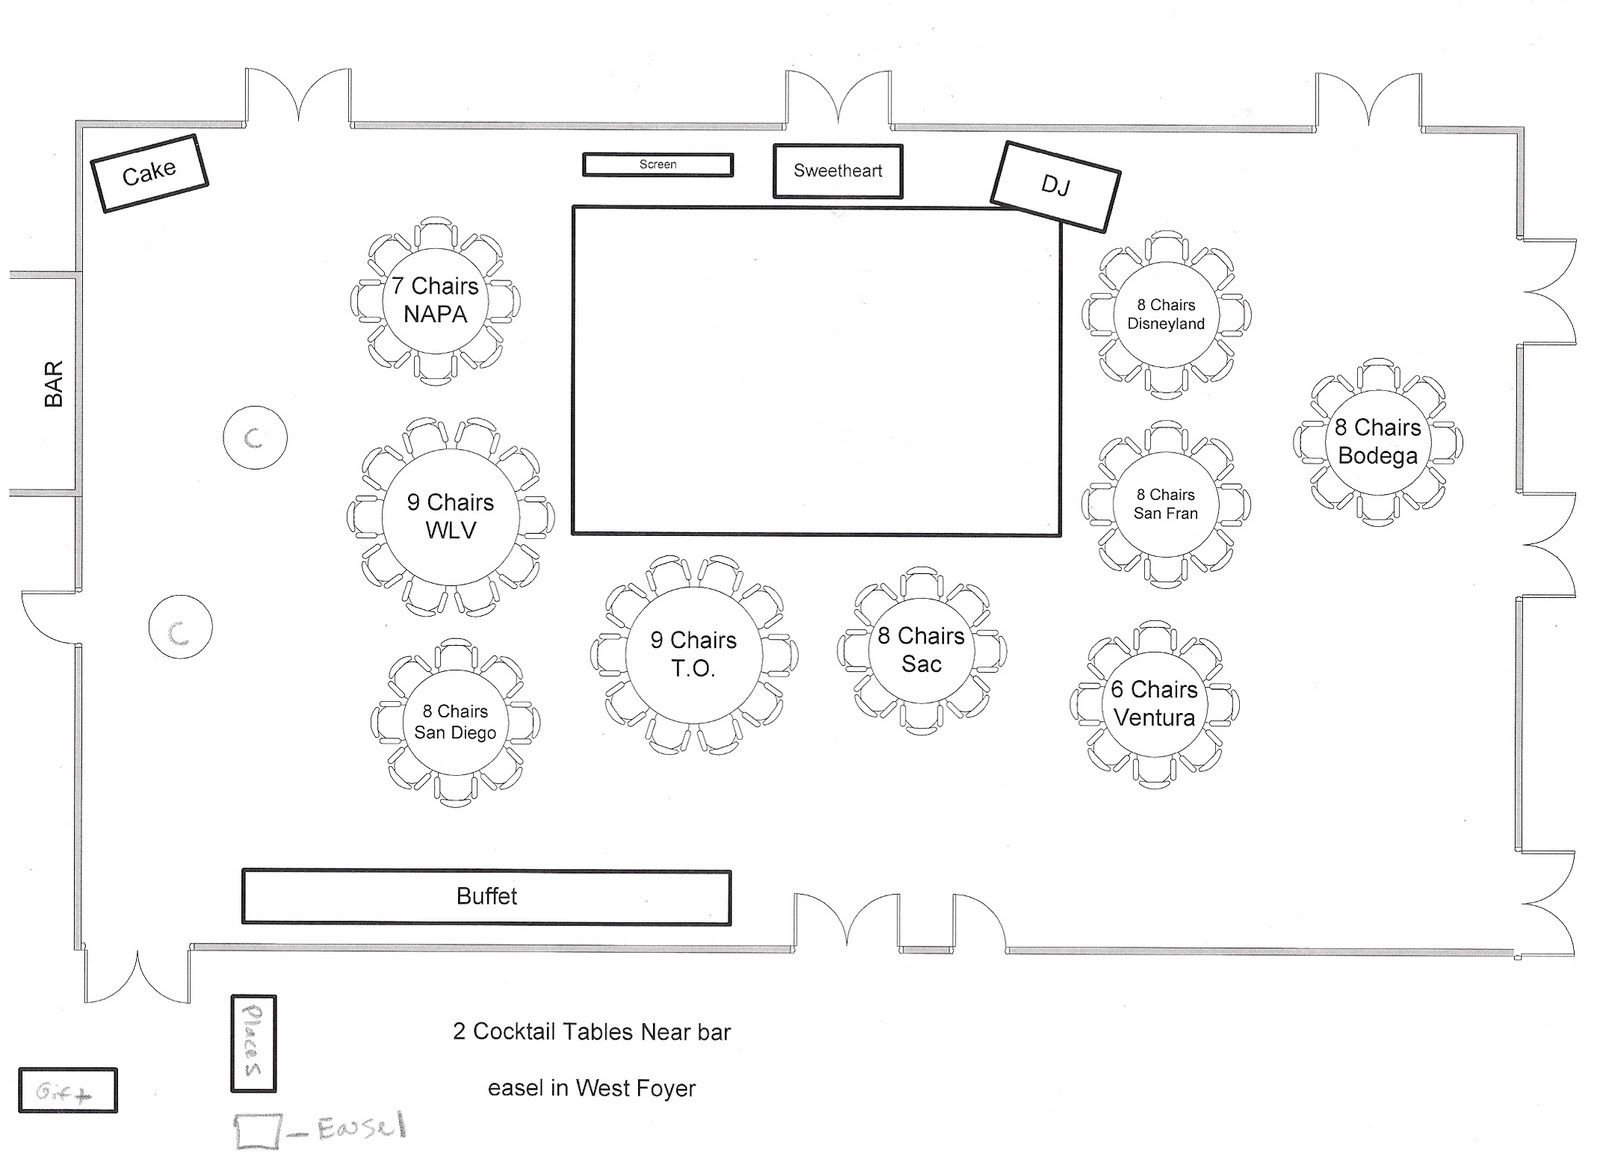 Sample seating diagram and floor plan www.hawaiianweddings.net ...